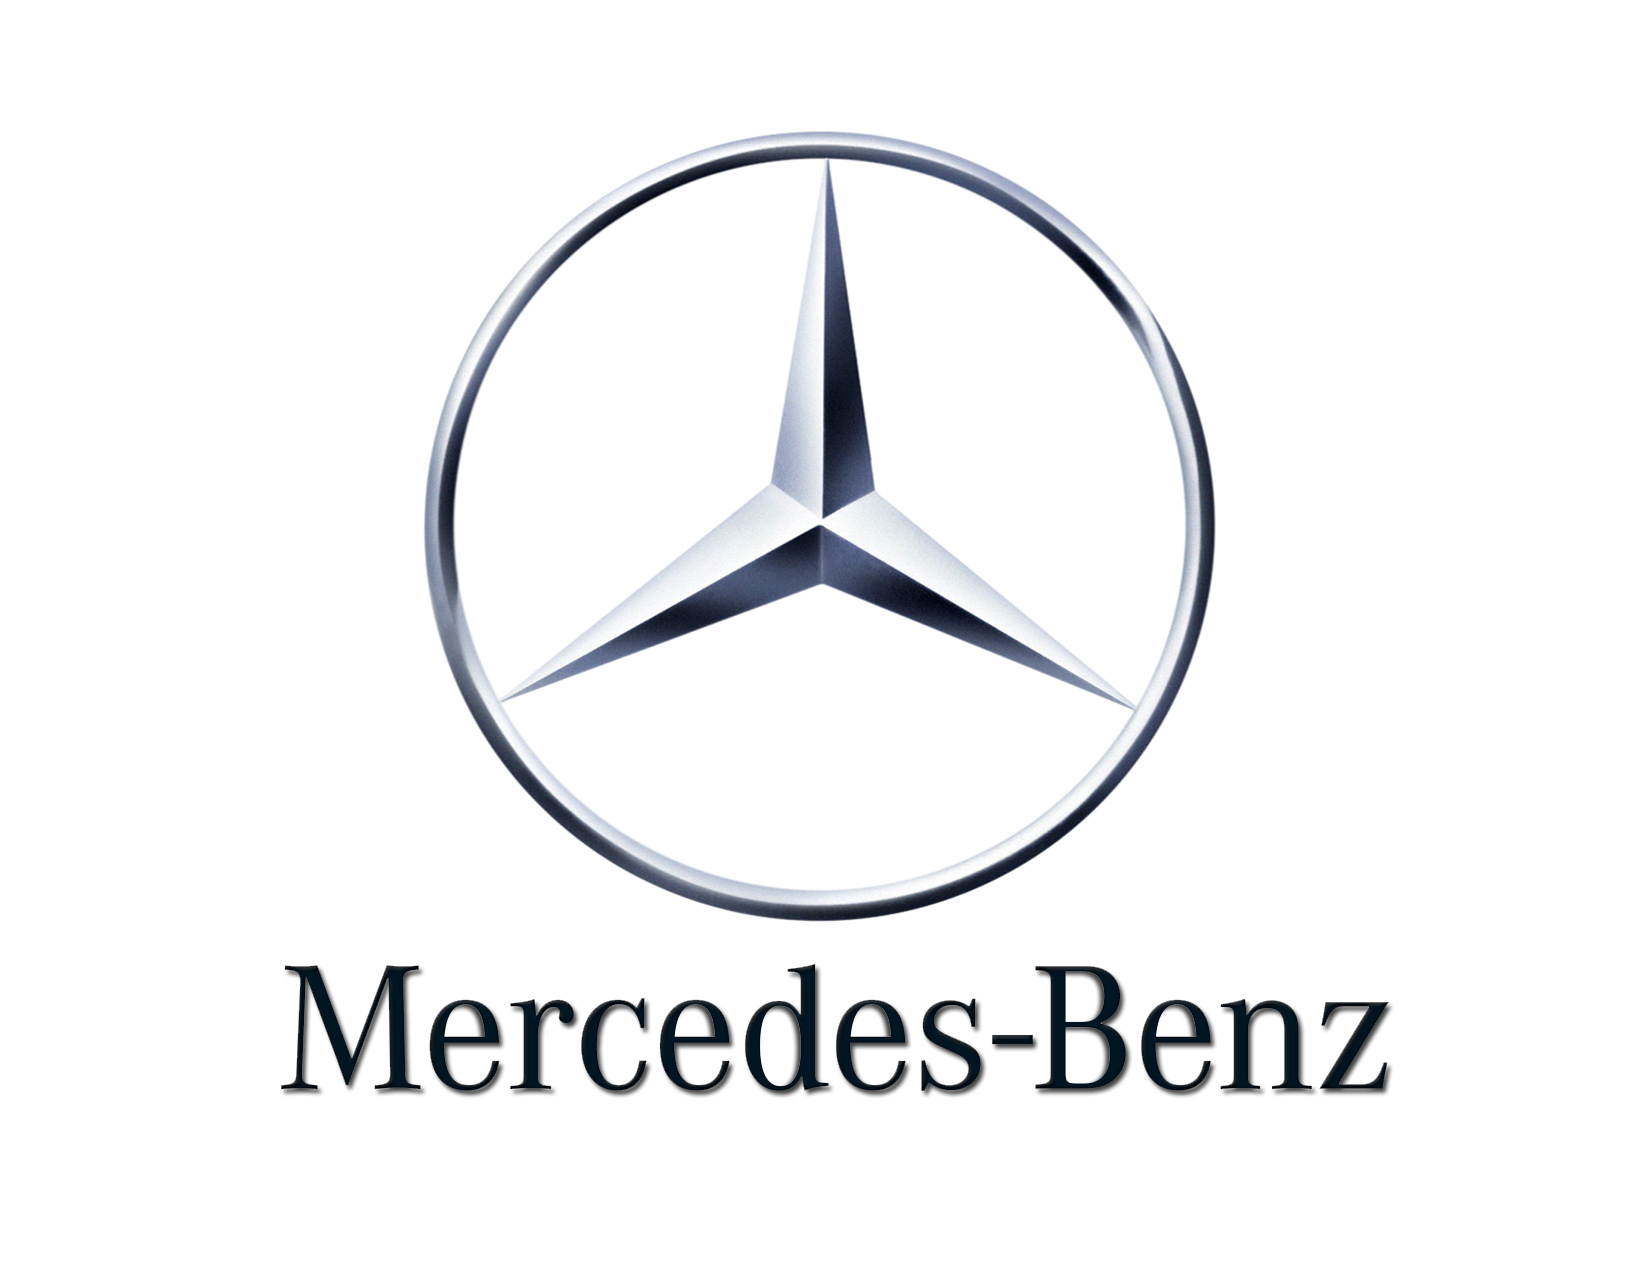 Mercedez-Benz Mason City